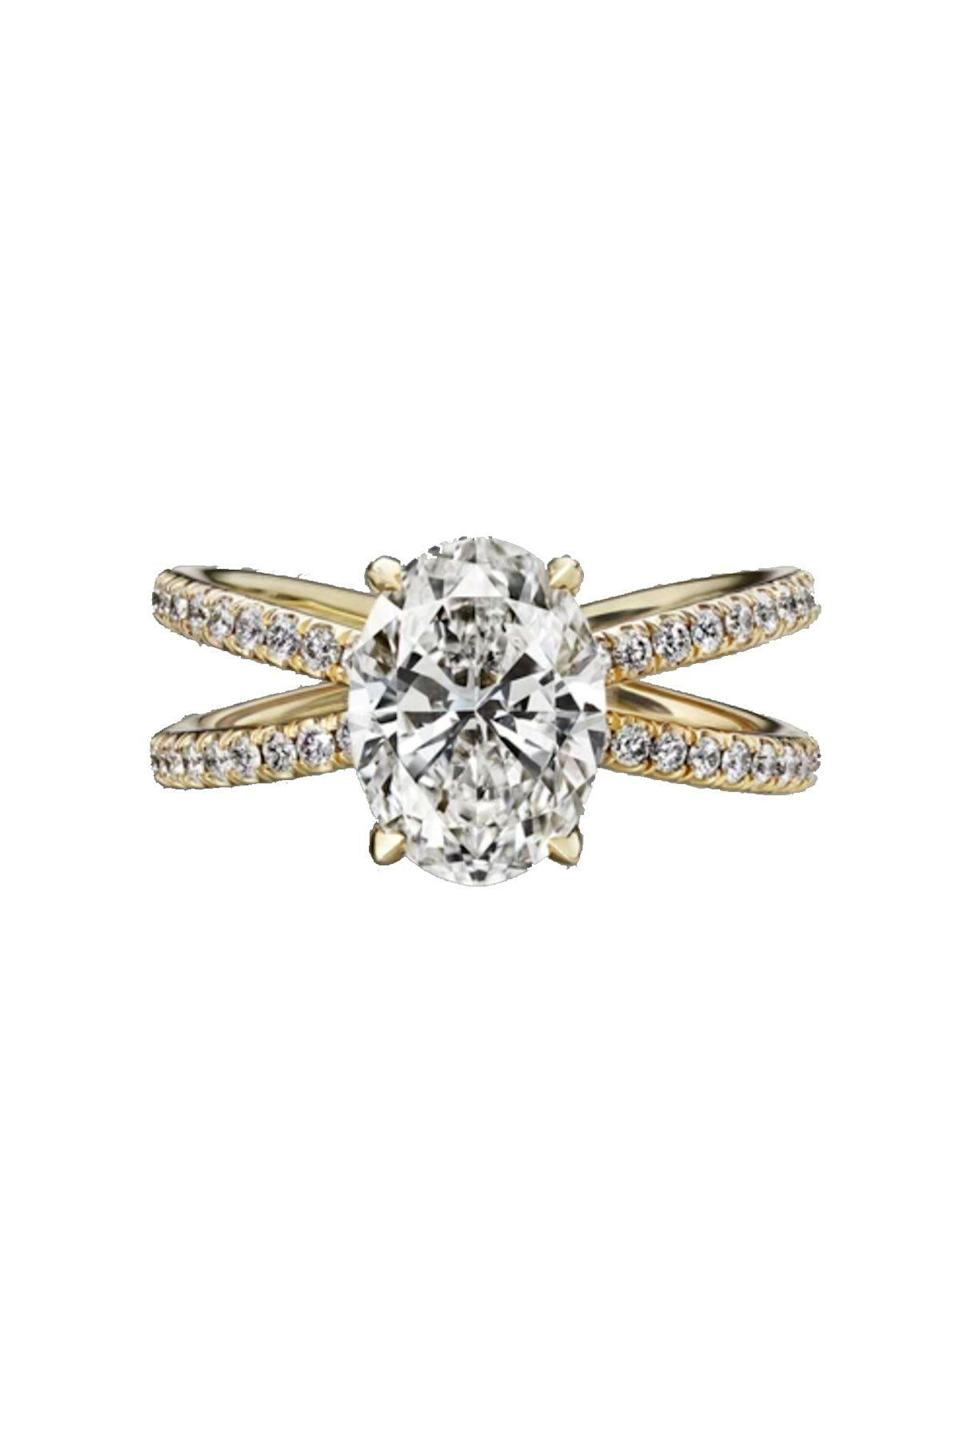 """<p><strong>Material Good</strong></p><p>materialgood.com</p><p><strong>$25500.00</strong></p><p><a href=""""https://www.materialgood.com/collections/engagement-rings/products/oval-cut-engagement-ring-with-diamond-pave-4"""" rel=""""nofollow noopener"""" target=""""_blank"""" data-ylk=""""slk:Shop Now"""" class=""""link rapid-noclick-resp"""">Shop Now</a></p><p>Level up a classic ring with a double band. </p>"""